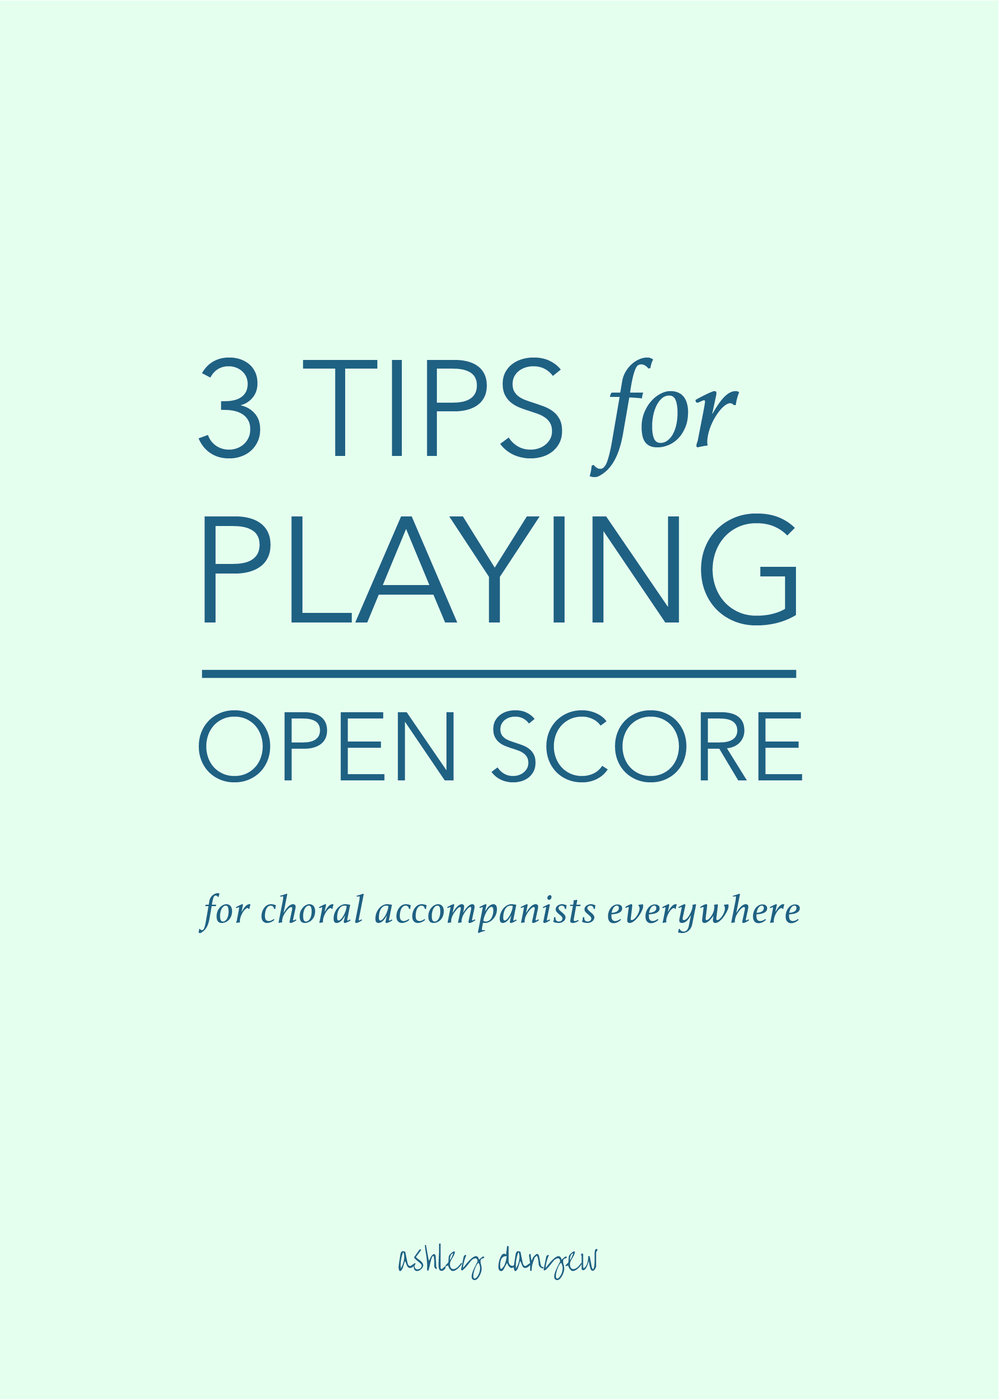 3-Tips-for-Playing-Open-Score-01.png